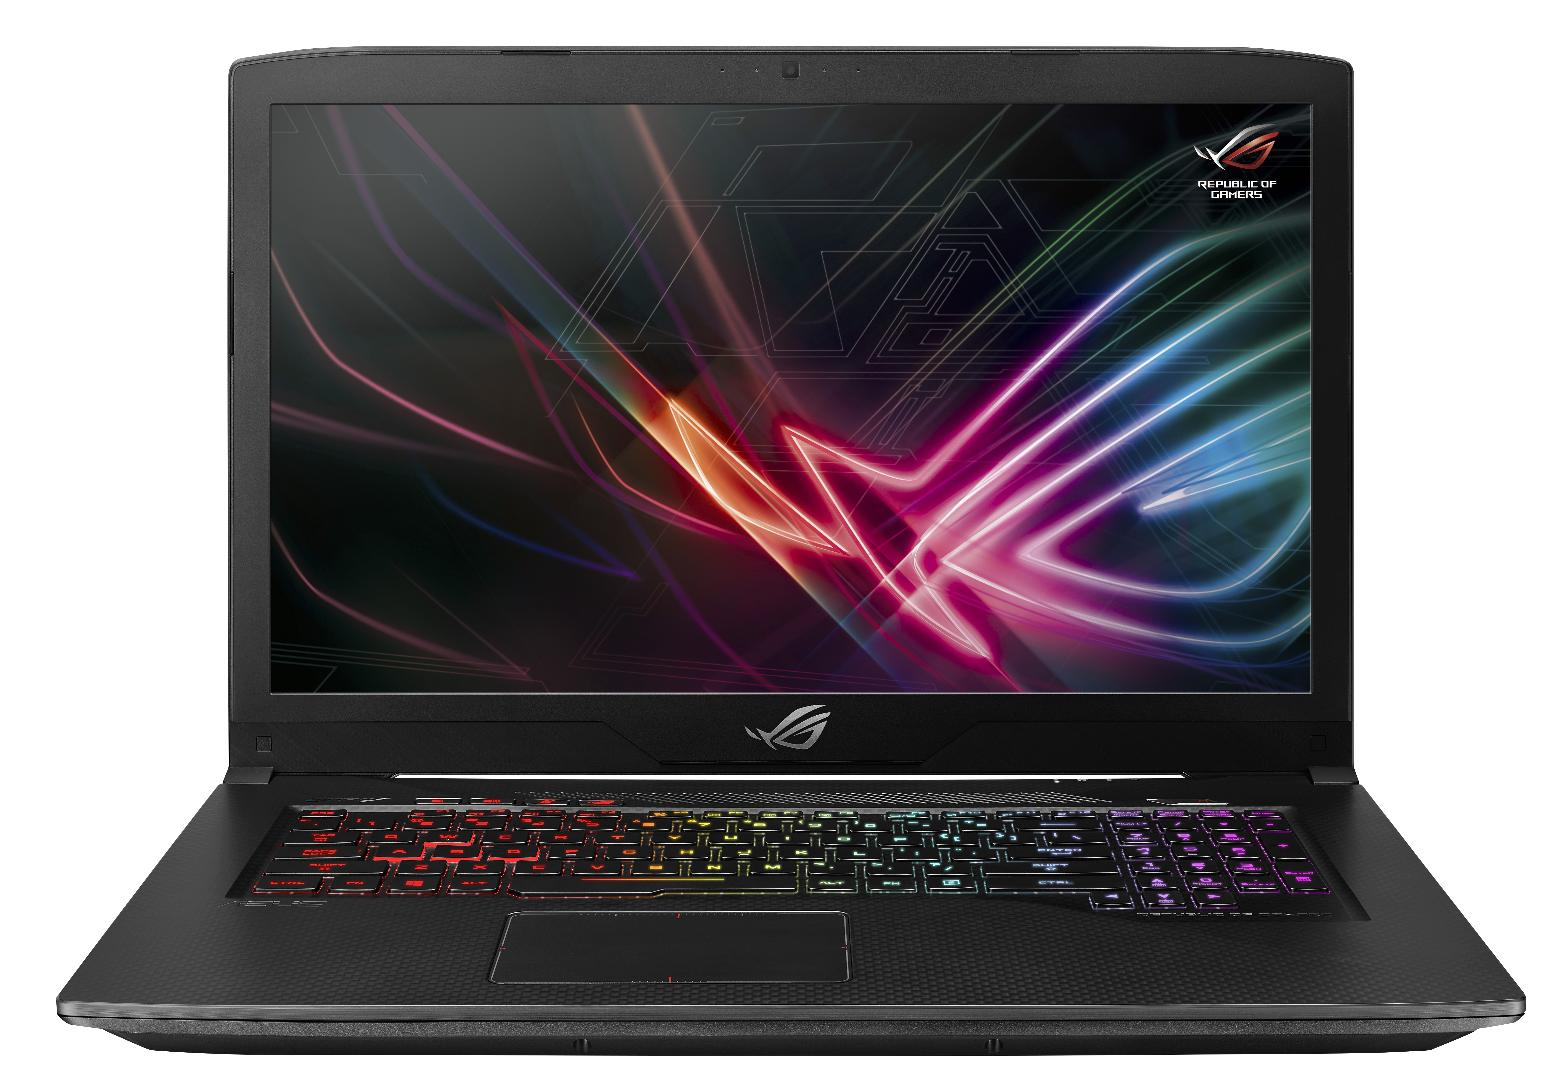 "ASUS ROG Strix Scar Edition GL703GE-ES73 17.3"" Premium Gaming & Business Laptop (Intel 8th Gen Coffee Lake i7-8750H... by MichaelElectronics2"